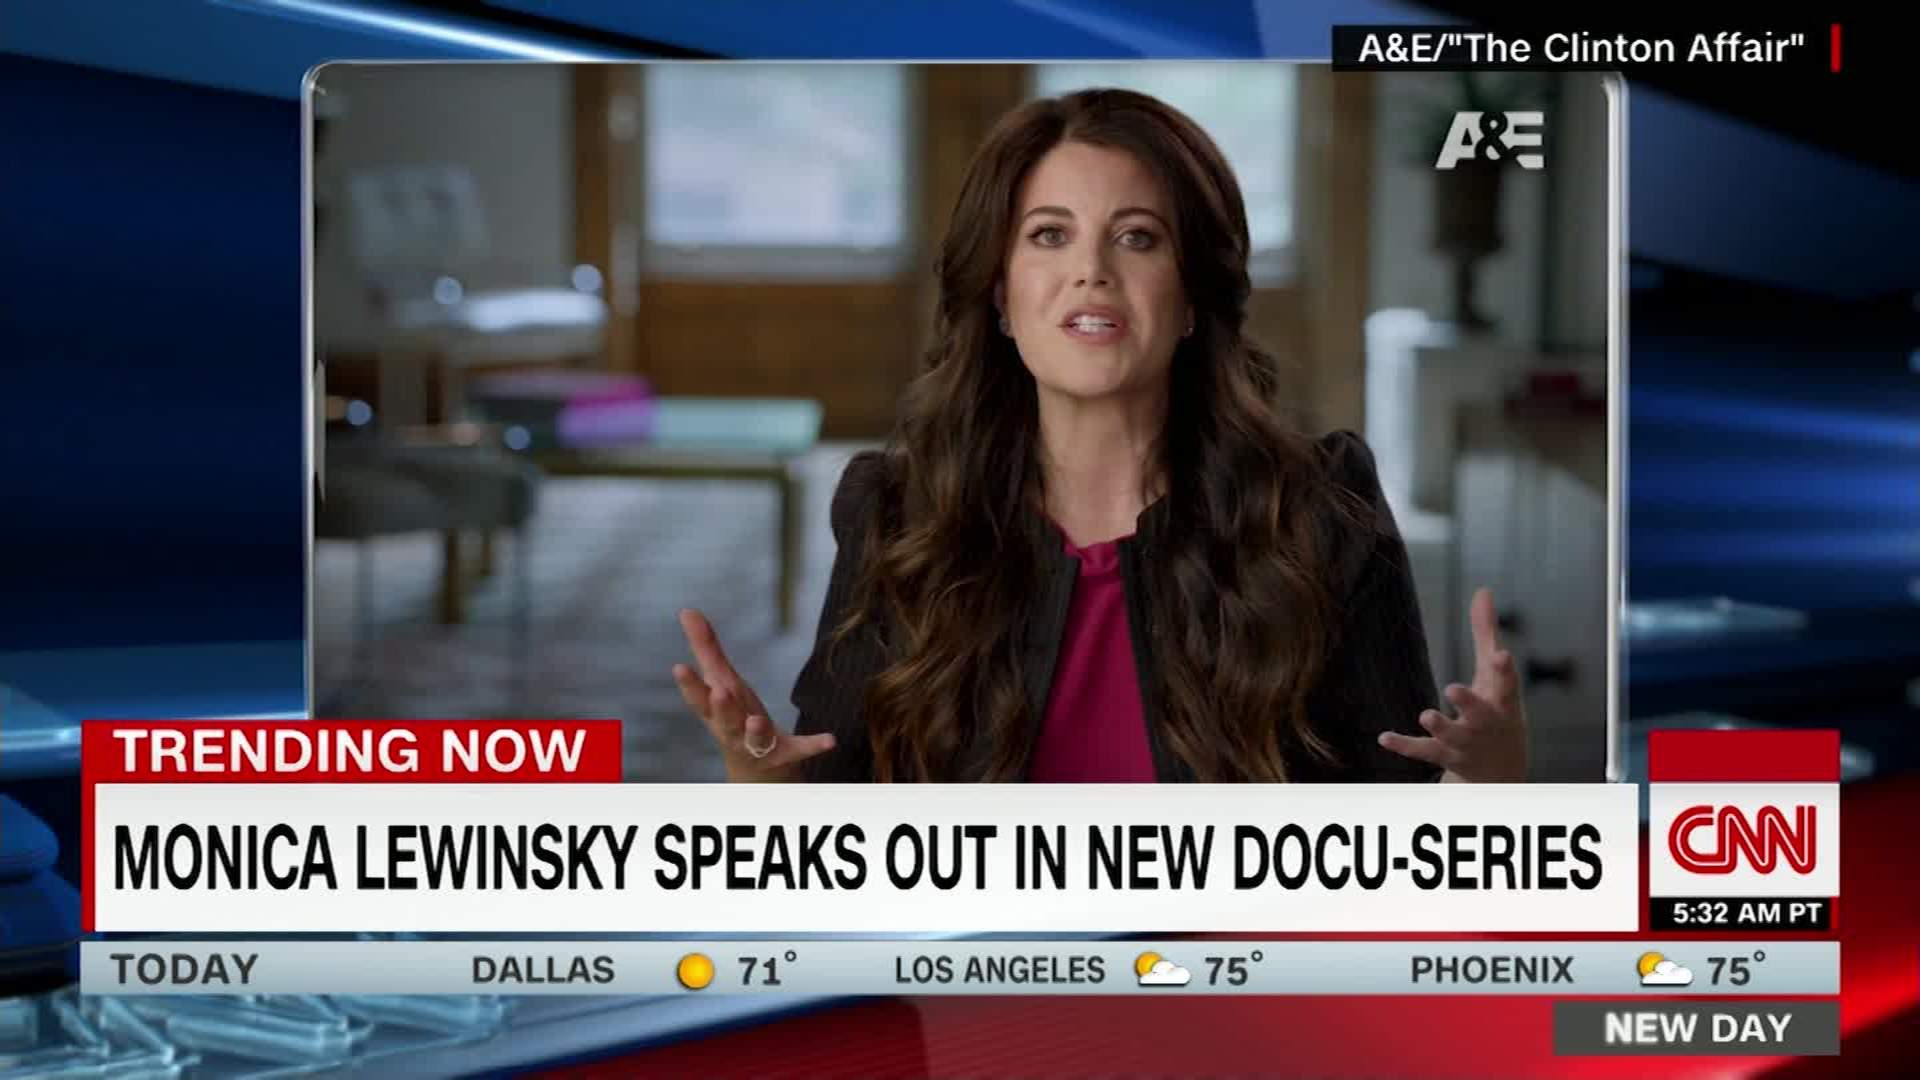 Lewinsky offers colorful remark in apparent response to Starr joining Trump defense team